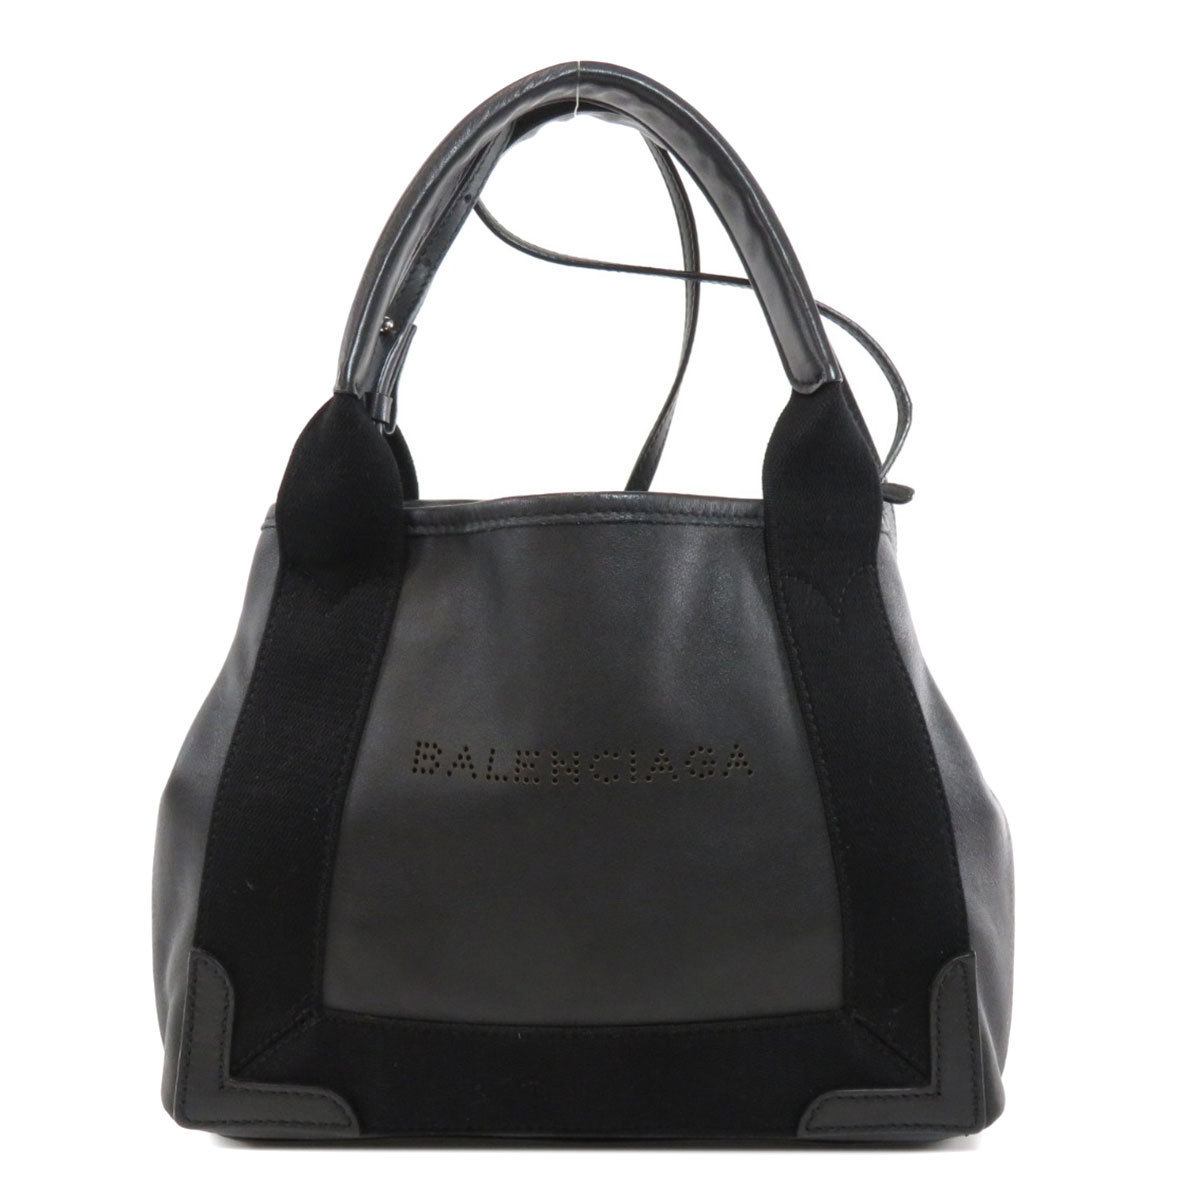 Balenciaga 390346 Navy Cover S Tote Bag Leather Ladies